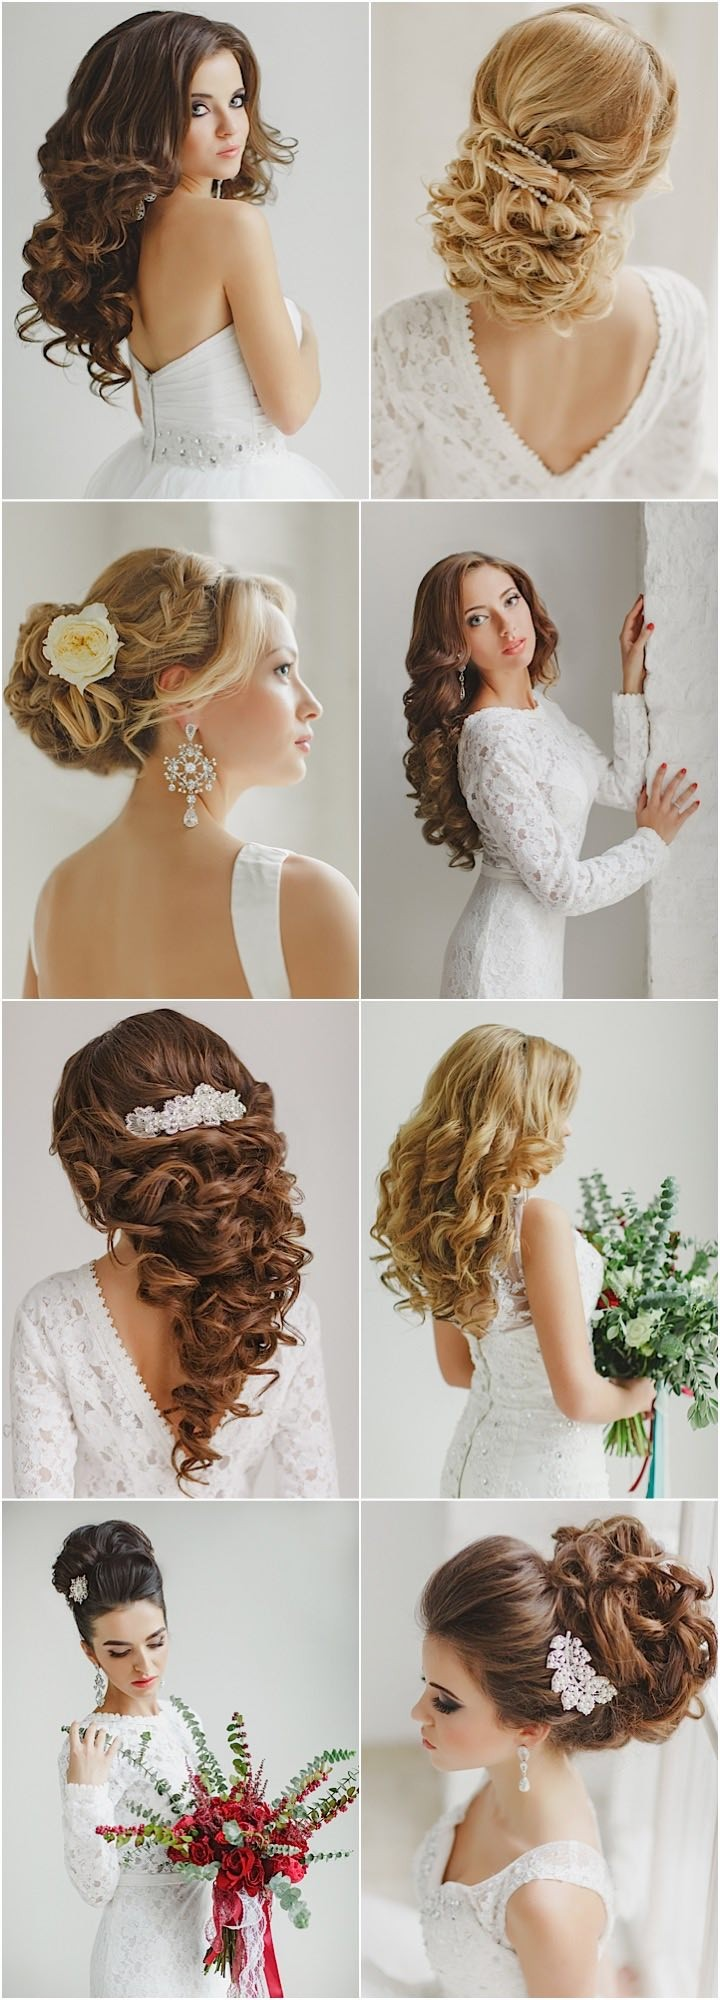 wedding-hairstyles-27-0422815mc